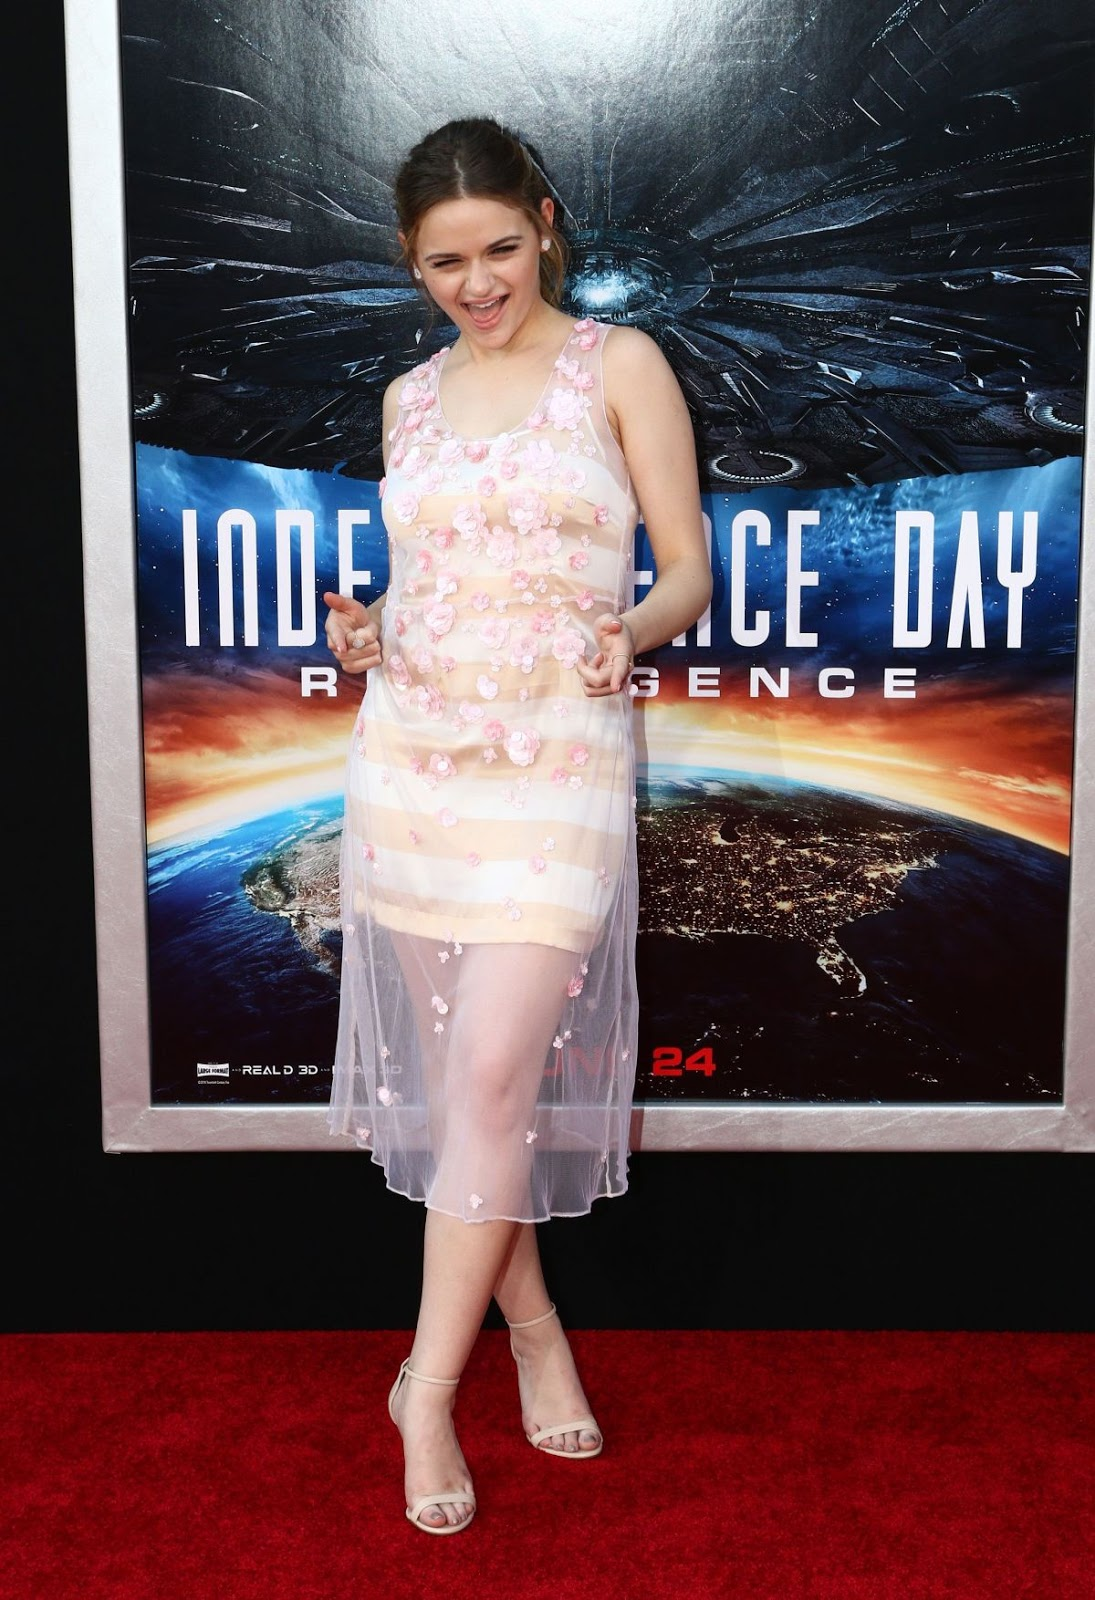 HQ Photos of Joey King at Independence Day Resurgence Hollywood Premiere